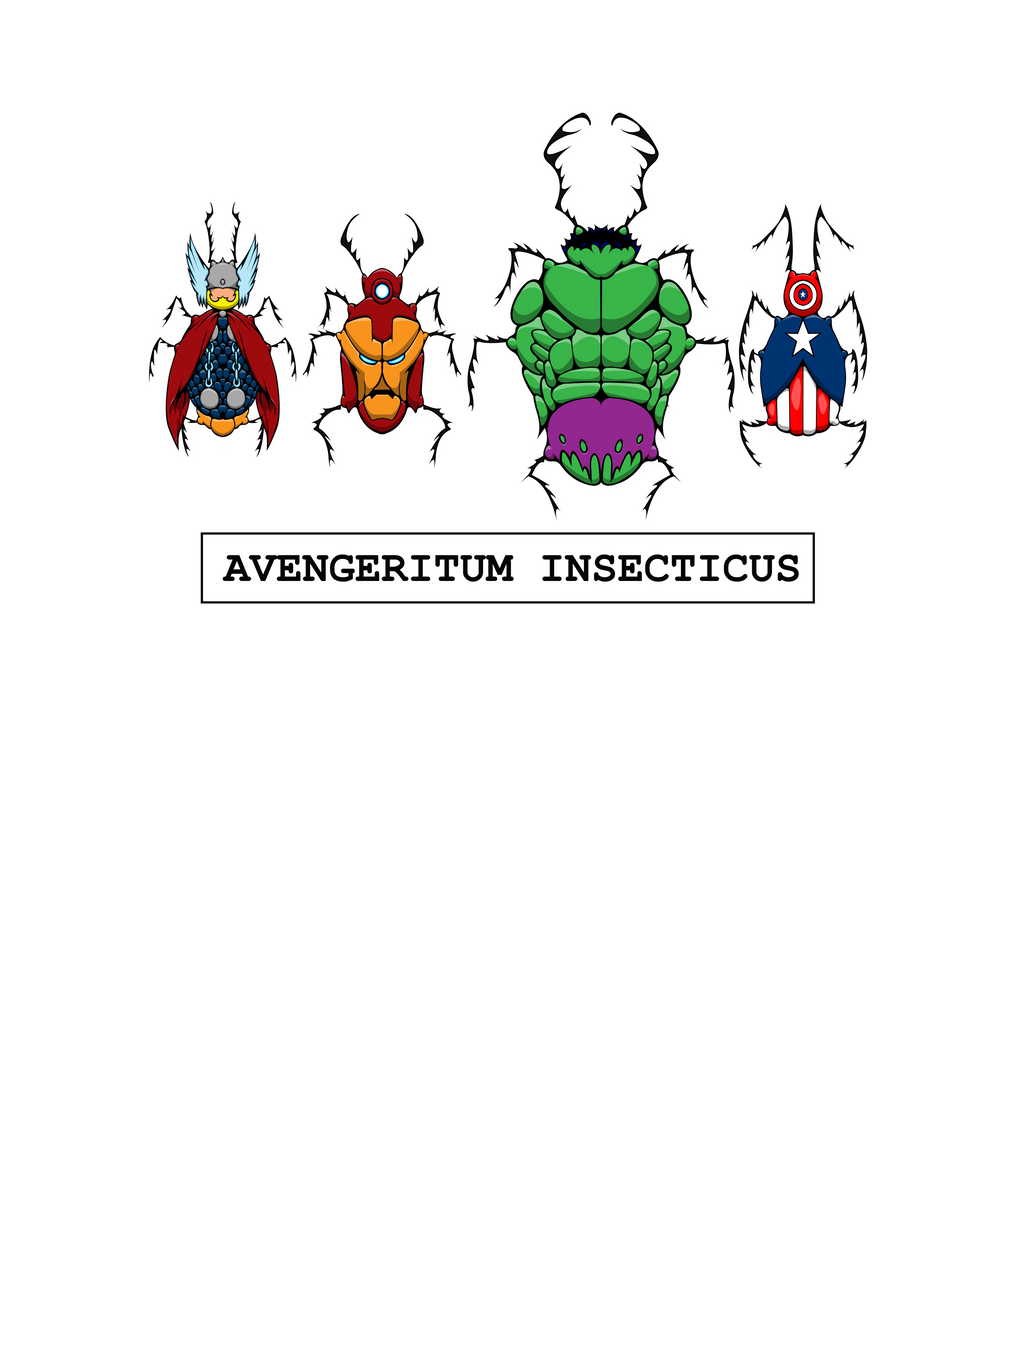 Avengeritum Insecticus by yayzus